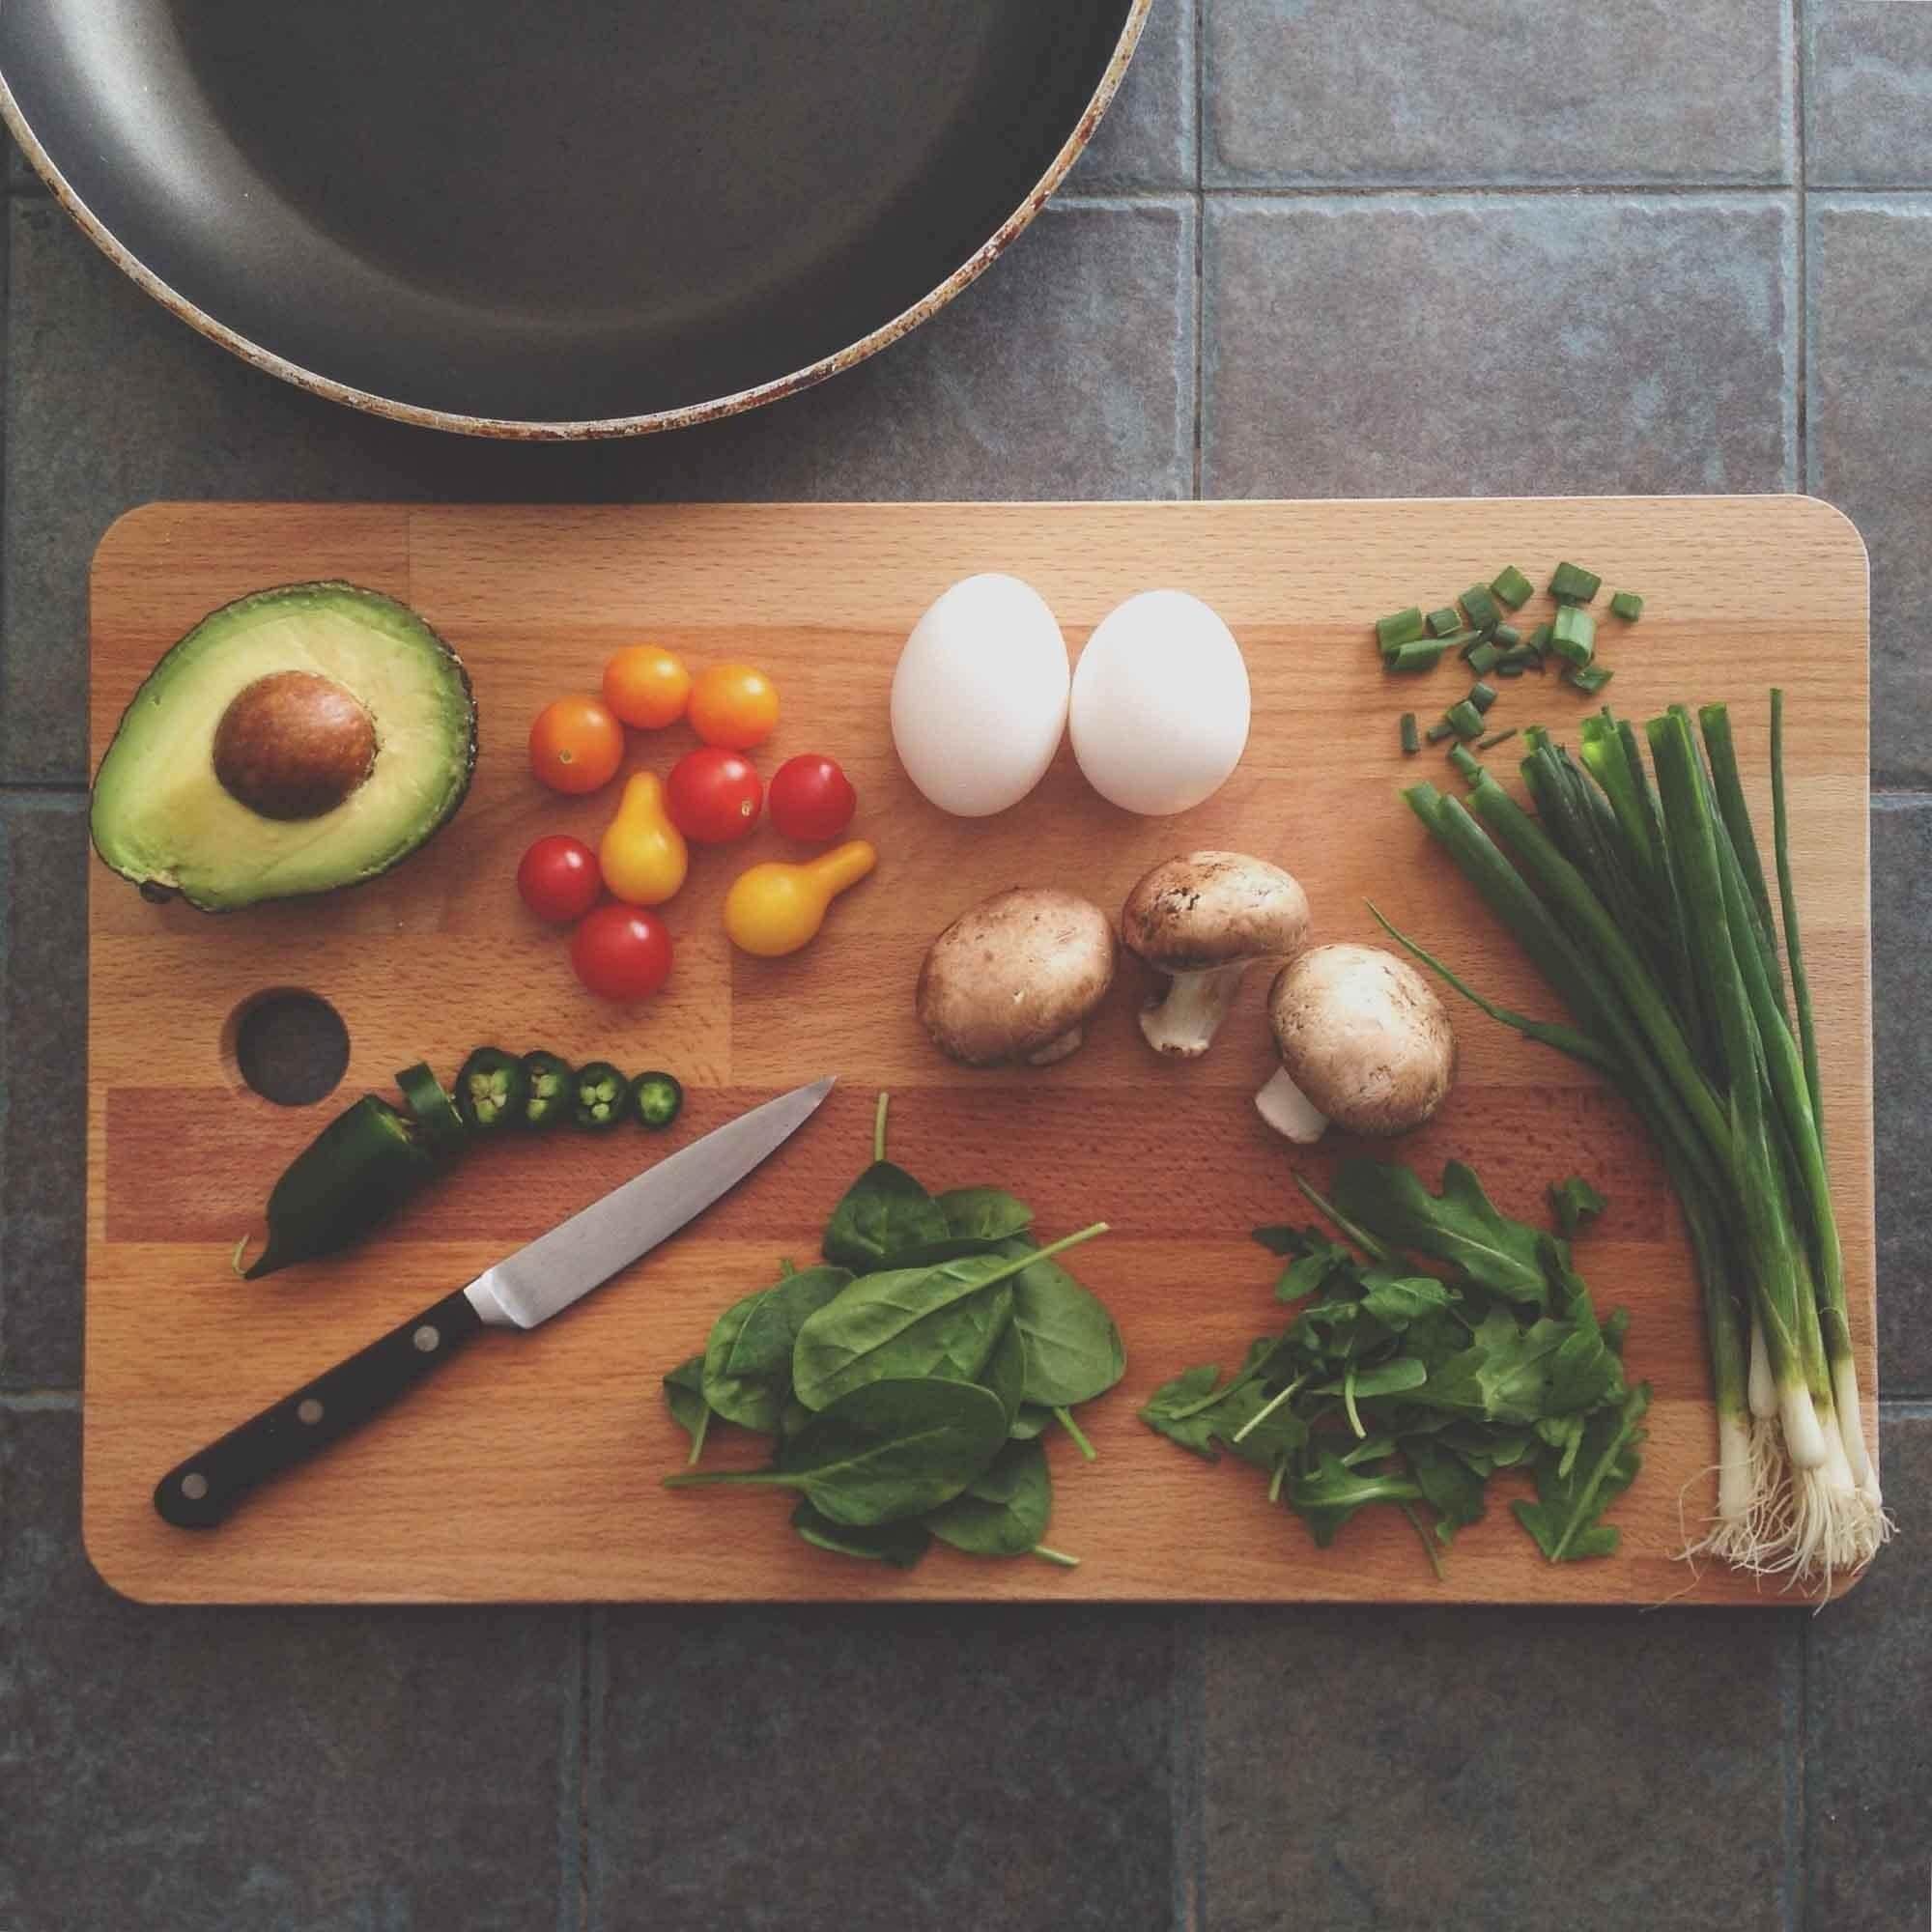 What Is The Ketogenic Lifestyle And Diet?